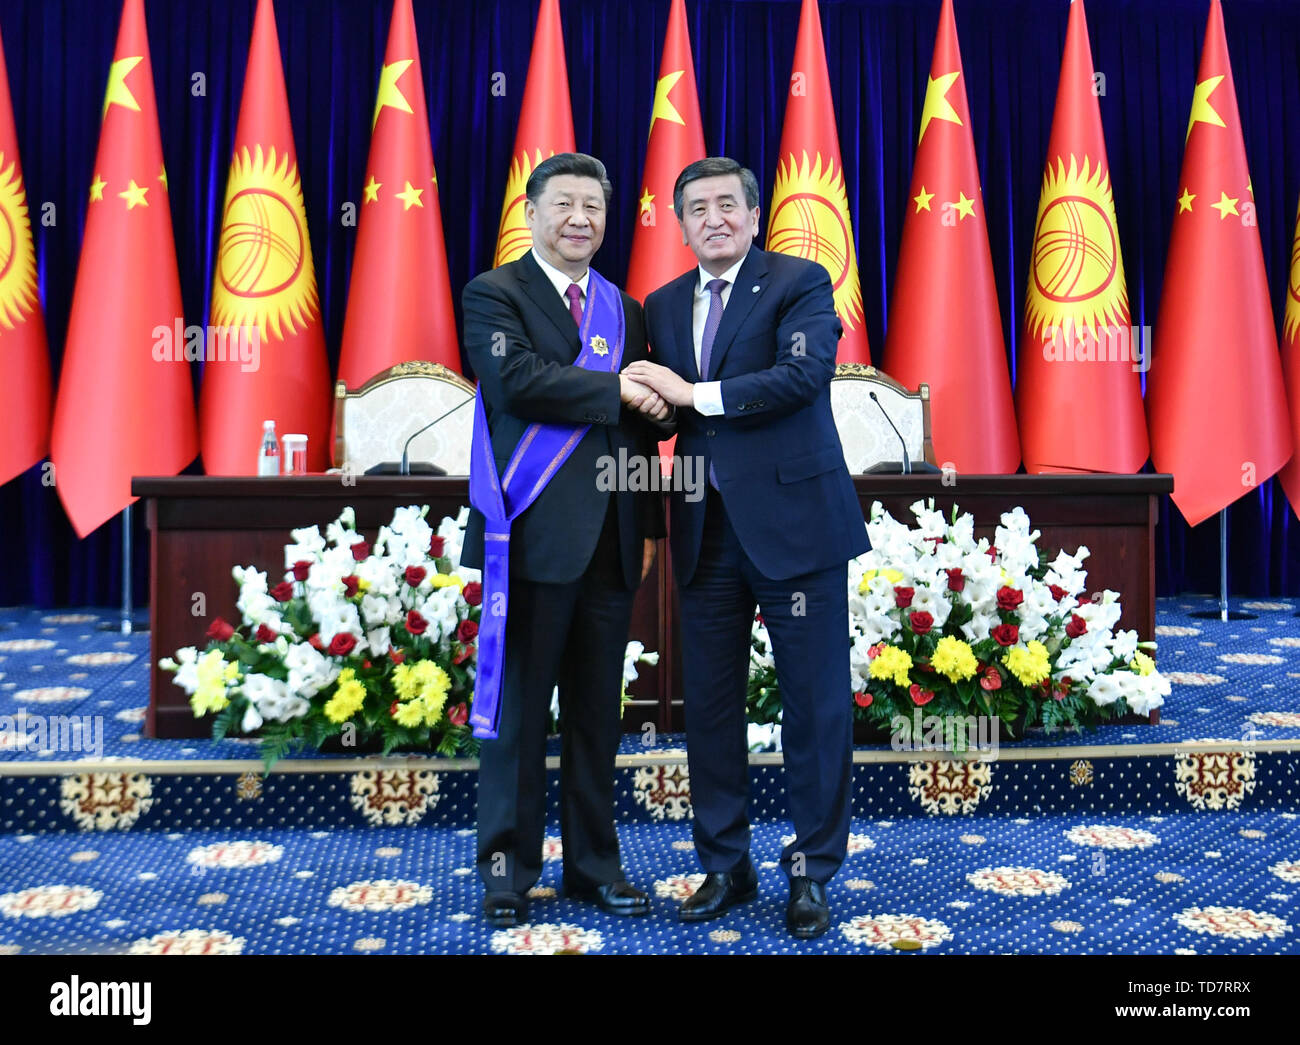 Bishkek, Kyrgyzstan. 13th June, 2019. Chinese President Xi Jinping is awarded the Manas Order of the First Degree, the highest national prize of Kyrgyzstan, by his Kyrgyz counterpart Sooronbay Jeenbekov in Bishkek, Kyrgyzstan, June 13, 2019. Credit: Yin Bogu/Xinhua/Alamy Live News - Stock Image